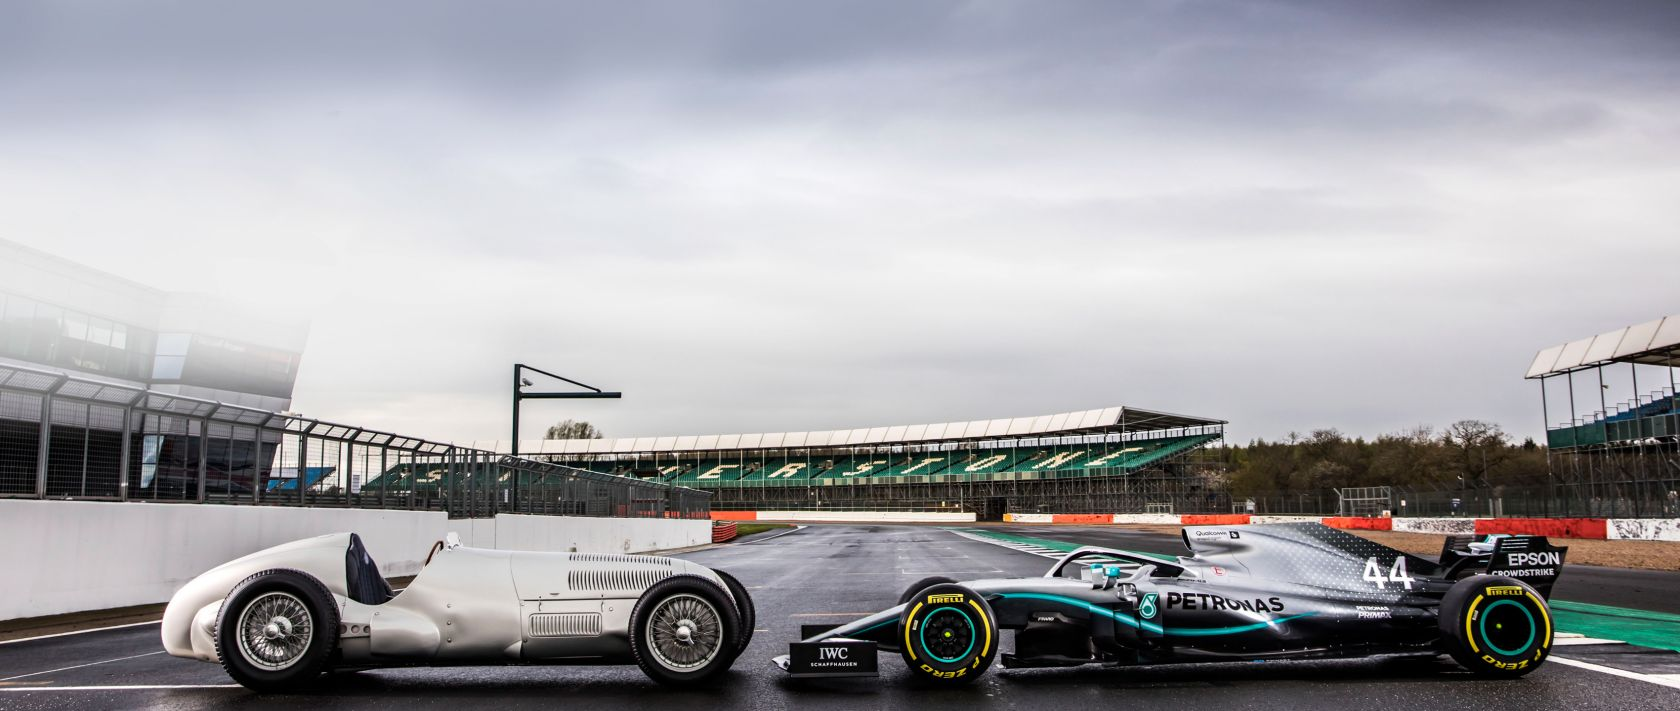 Meeting of the generations. The current Formula 1 car driven by Lewis Hamilton meets the Mercedes-Benz W 125 from 1937.